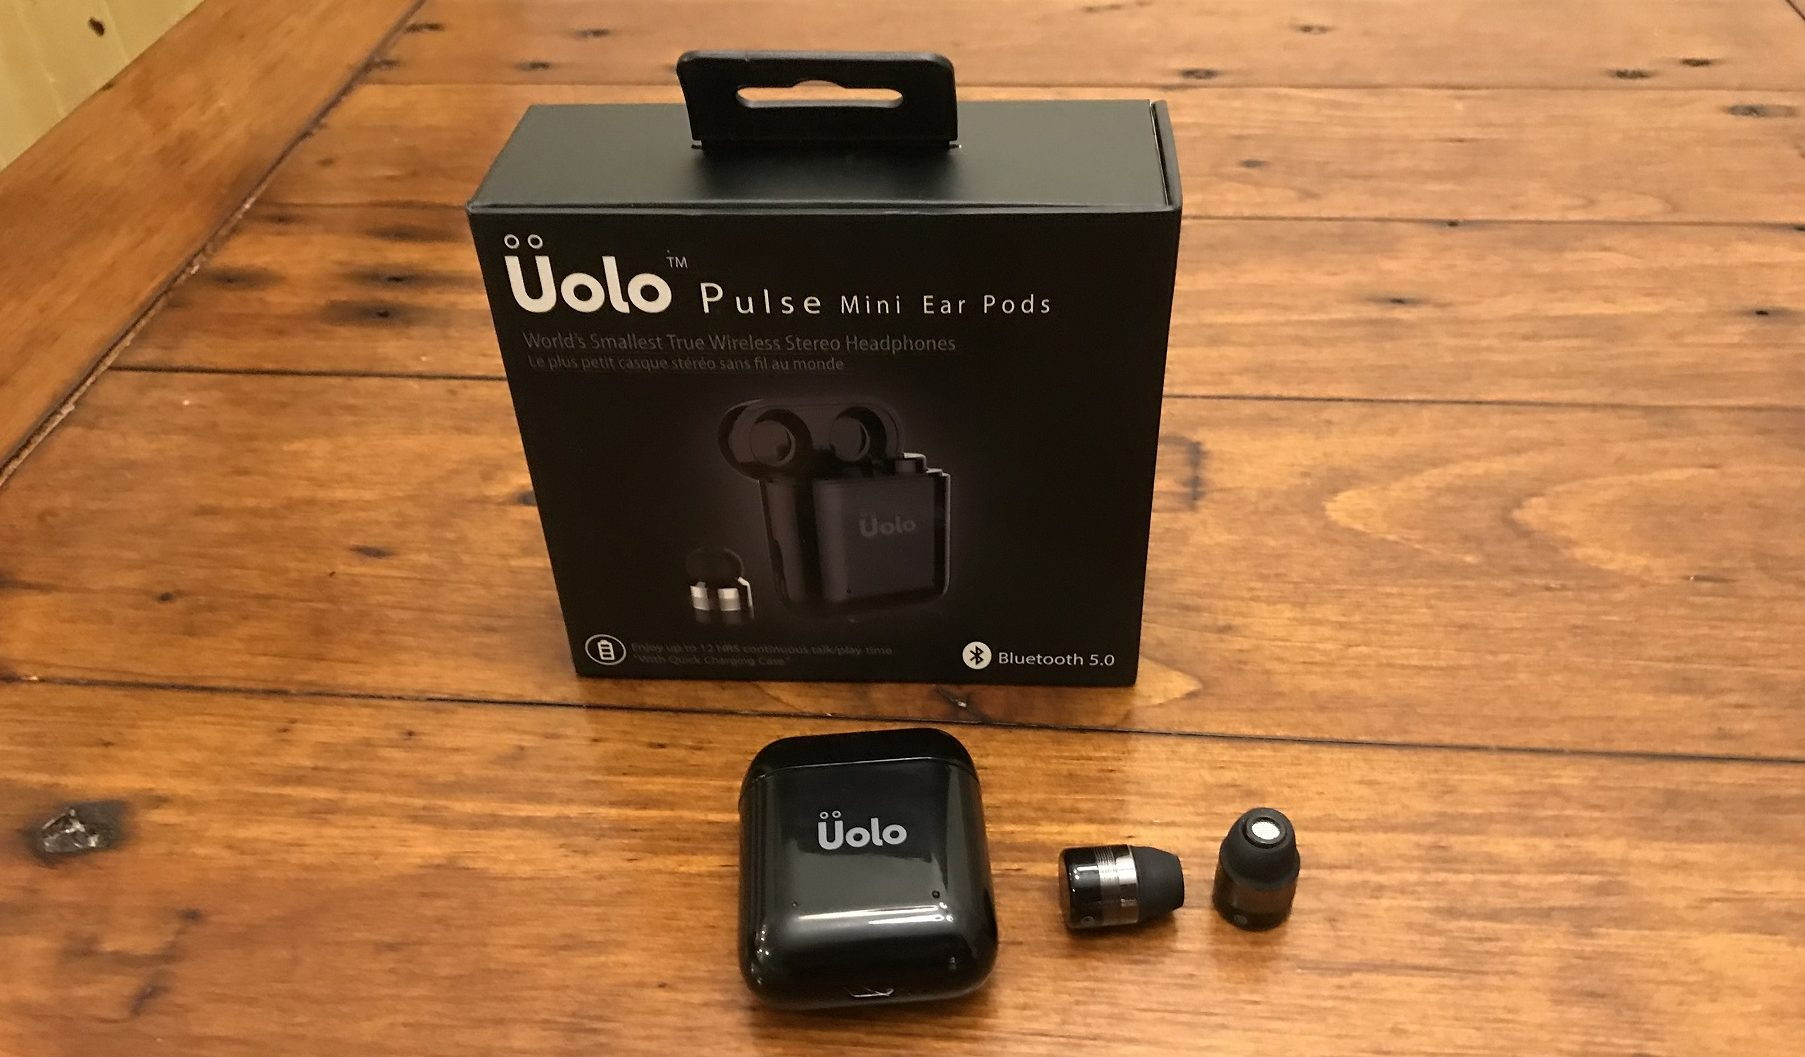 uolo mini ear pods - review